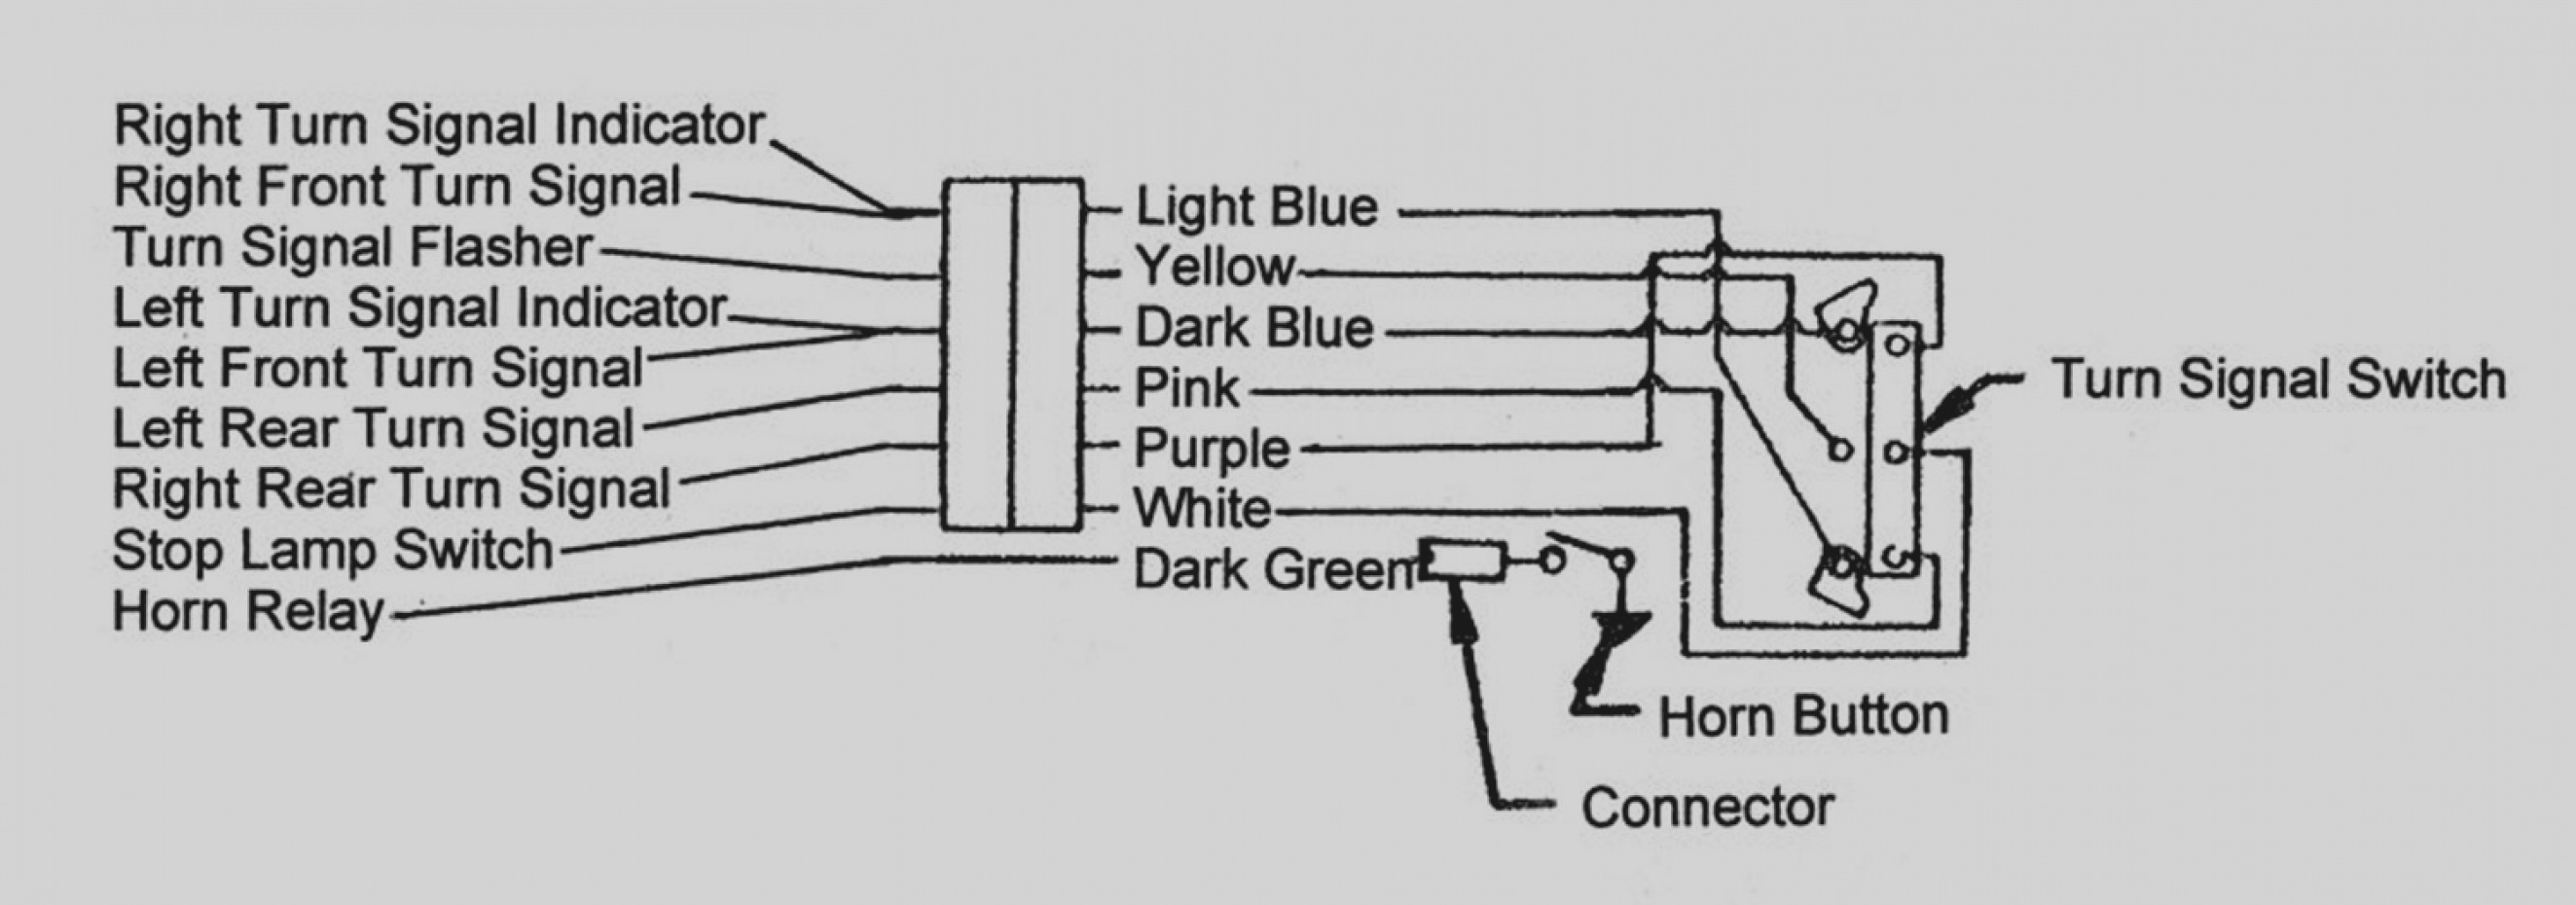 Universal Signal Switch Wiring Diagram - Wiring Diagram Inside on golf cart 36 volt wiring diagram, integrated starter generator wiring diagram, turn signal wiring diagram, vw starter wiring diagram, vw bug regulator wiring diagram, basic alternator wiring diagram, 12v solar panel wiring diagram, 1948 chevrolet wiring diagram,